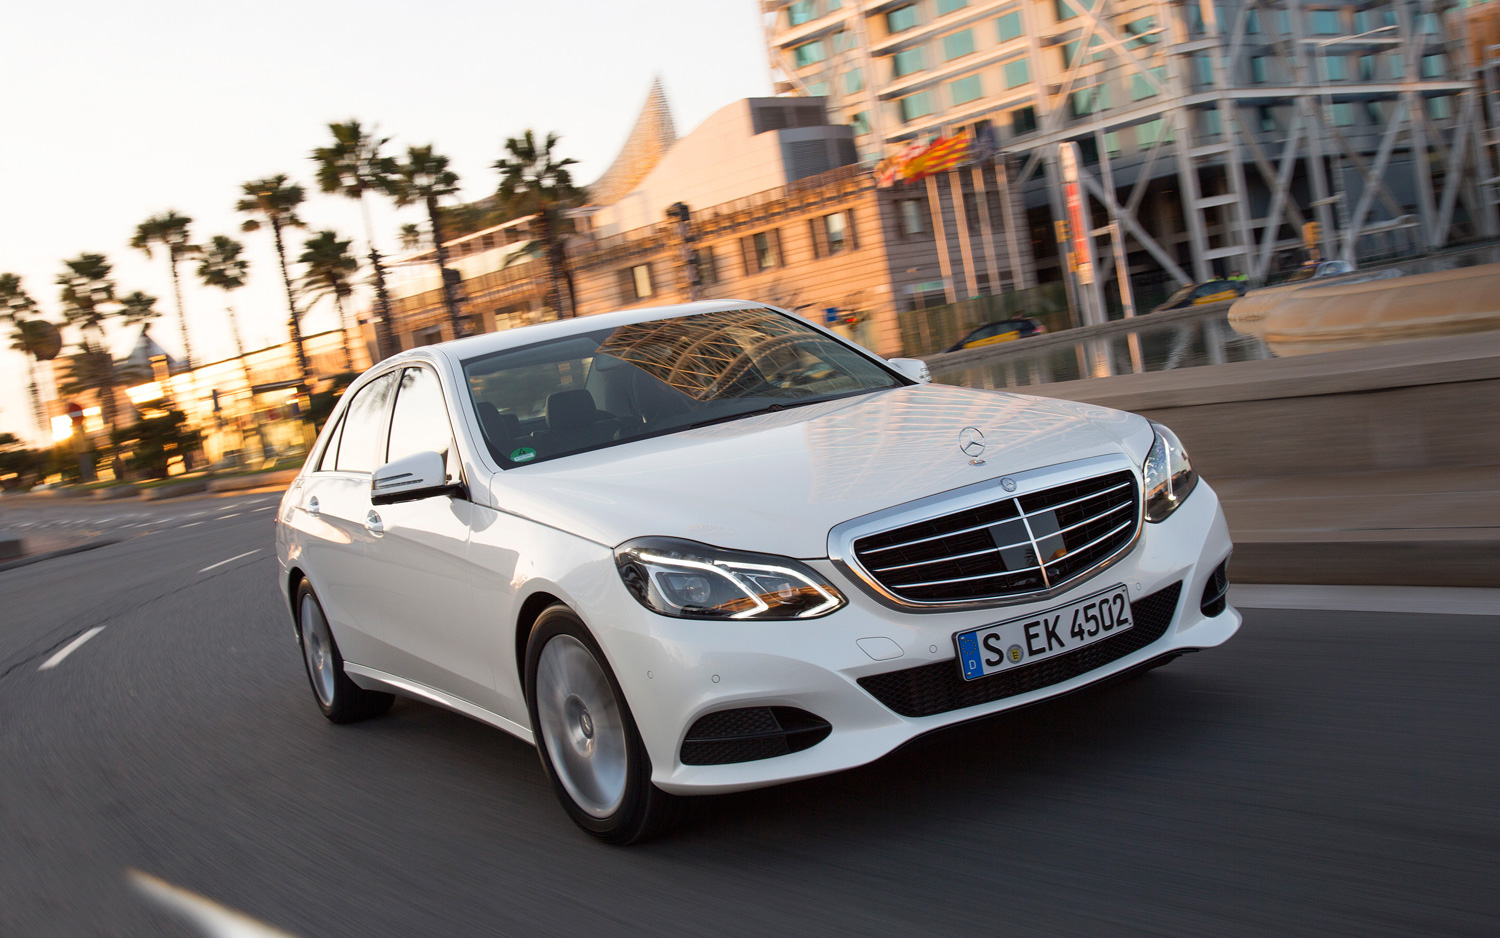 2015 Mb E350 Wiring Diagram Basic Schematic Mercedes Benz A Class Thread Of The Day Is Turbodiesel I 4 Appropriate For Midsize Starter Source Used E